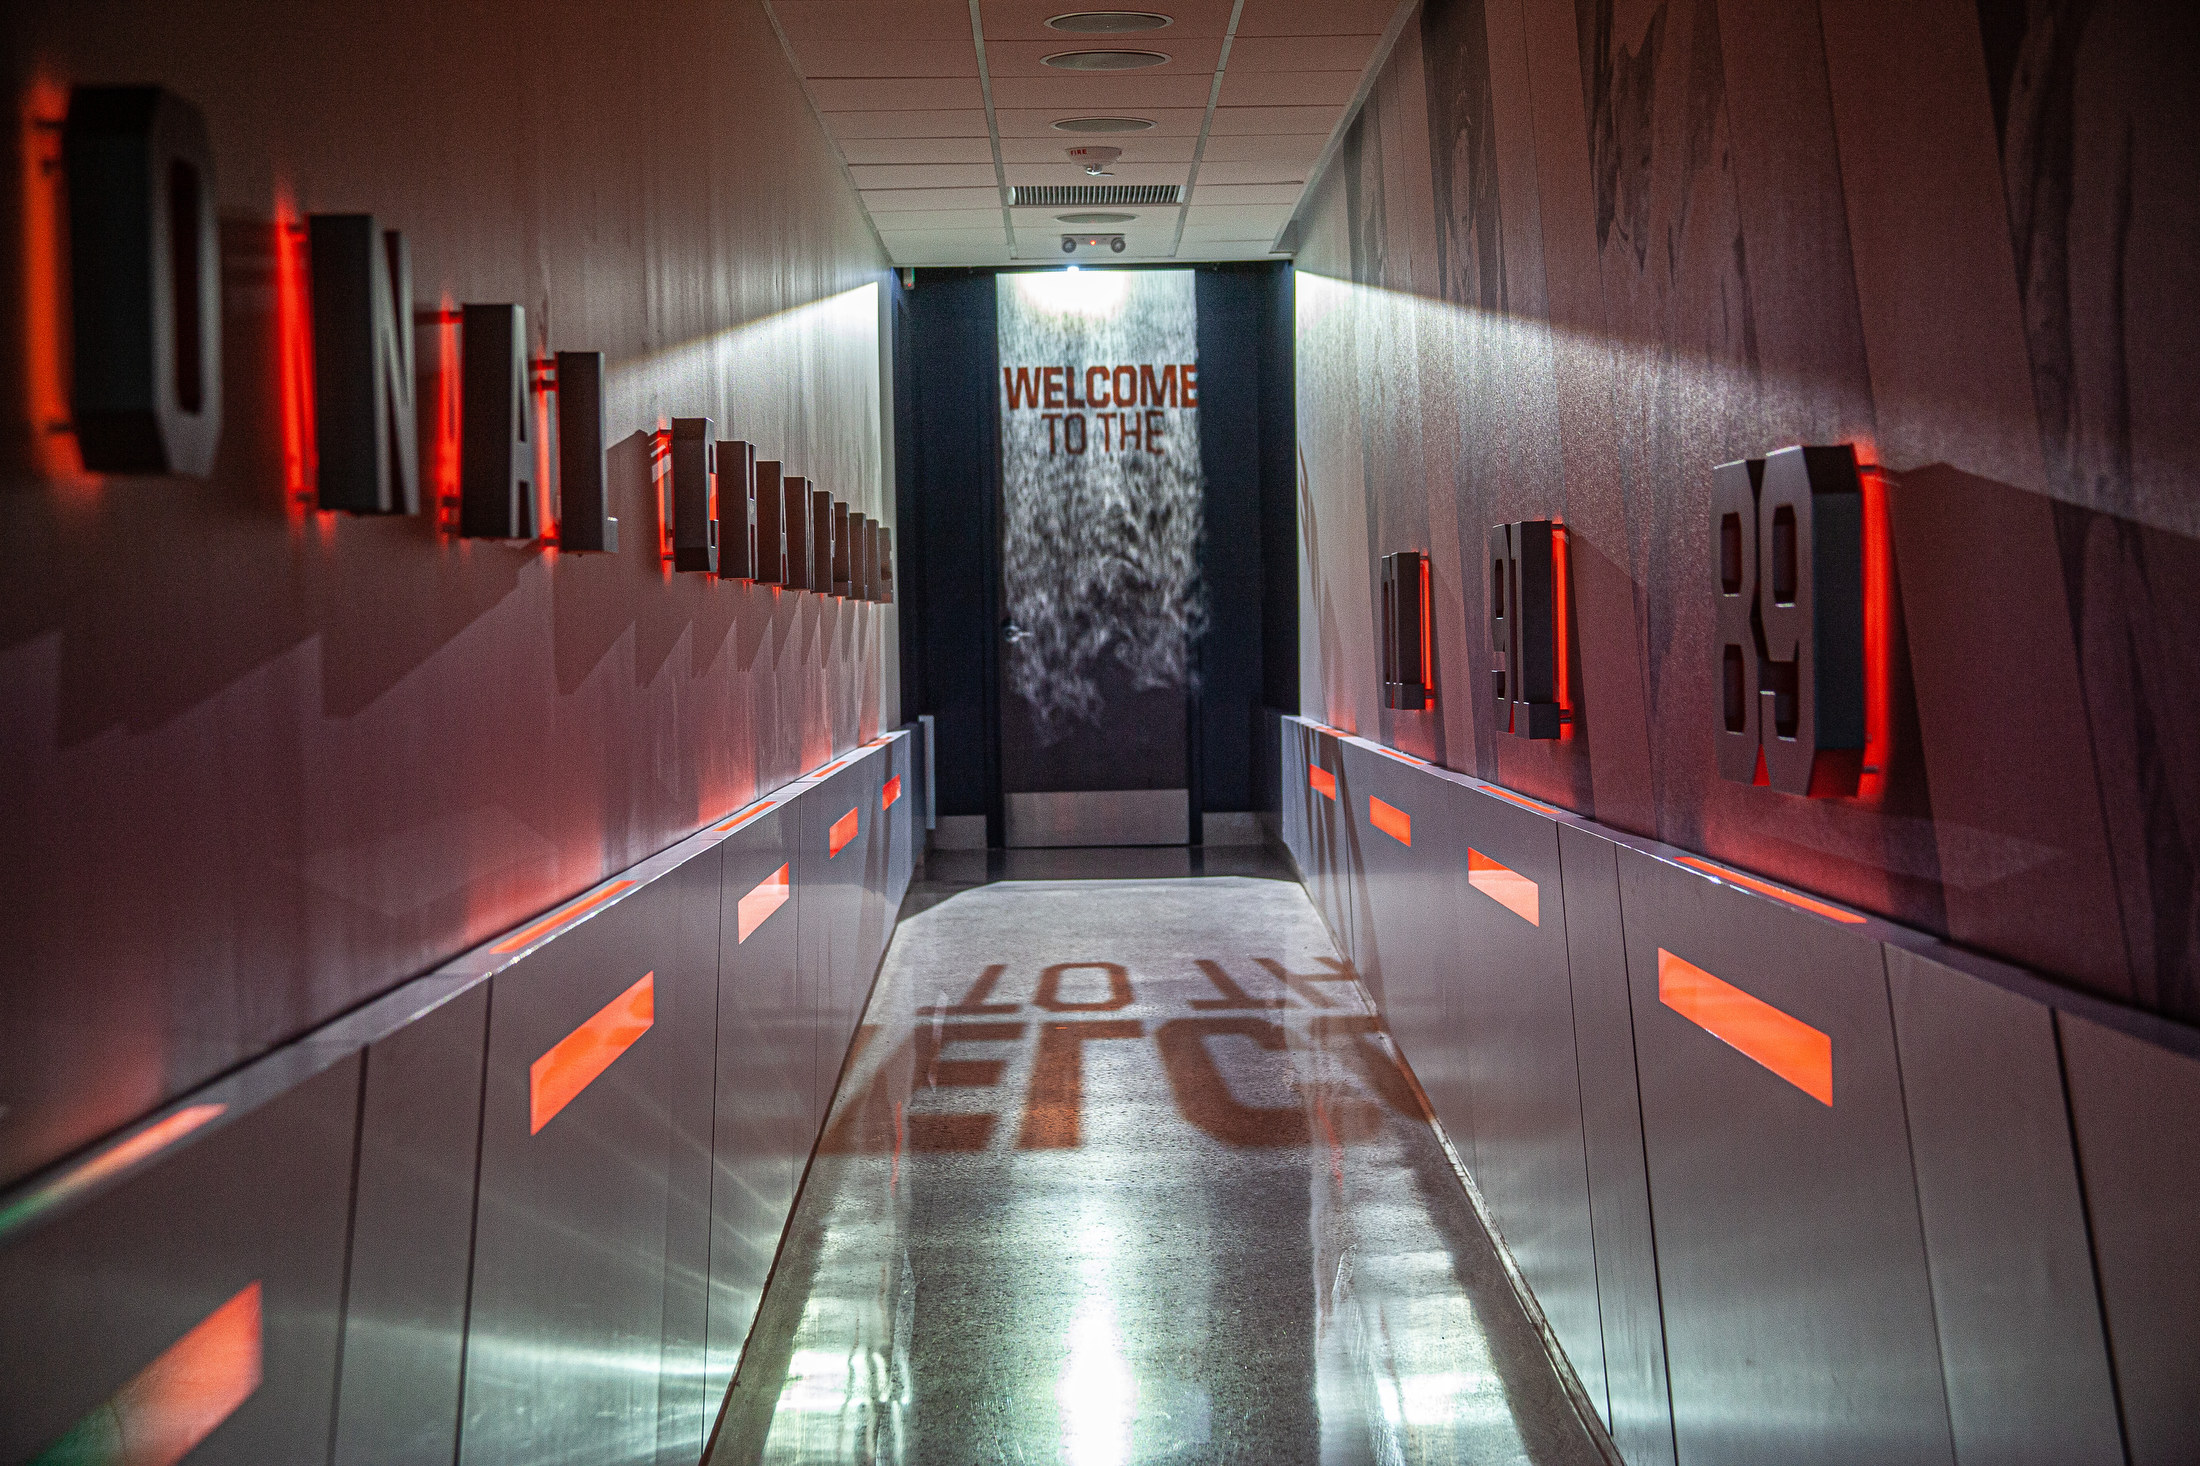 Fogscreen® is involved in a visually stunning project at the University of Miami.